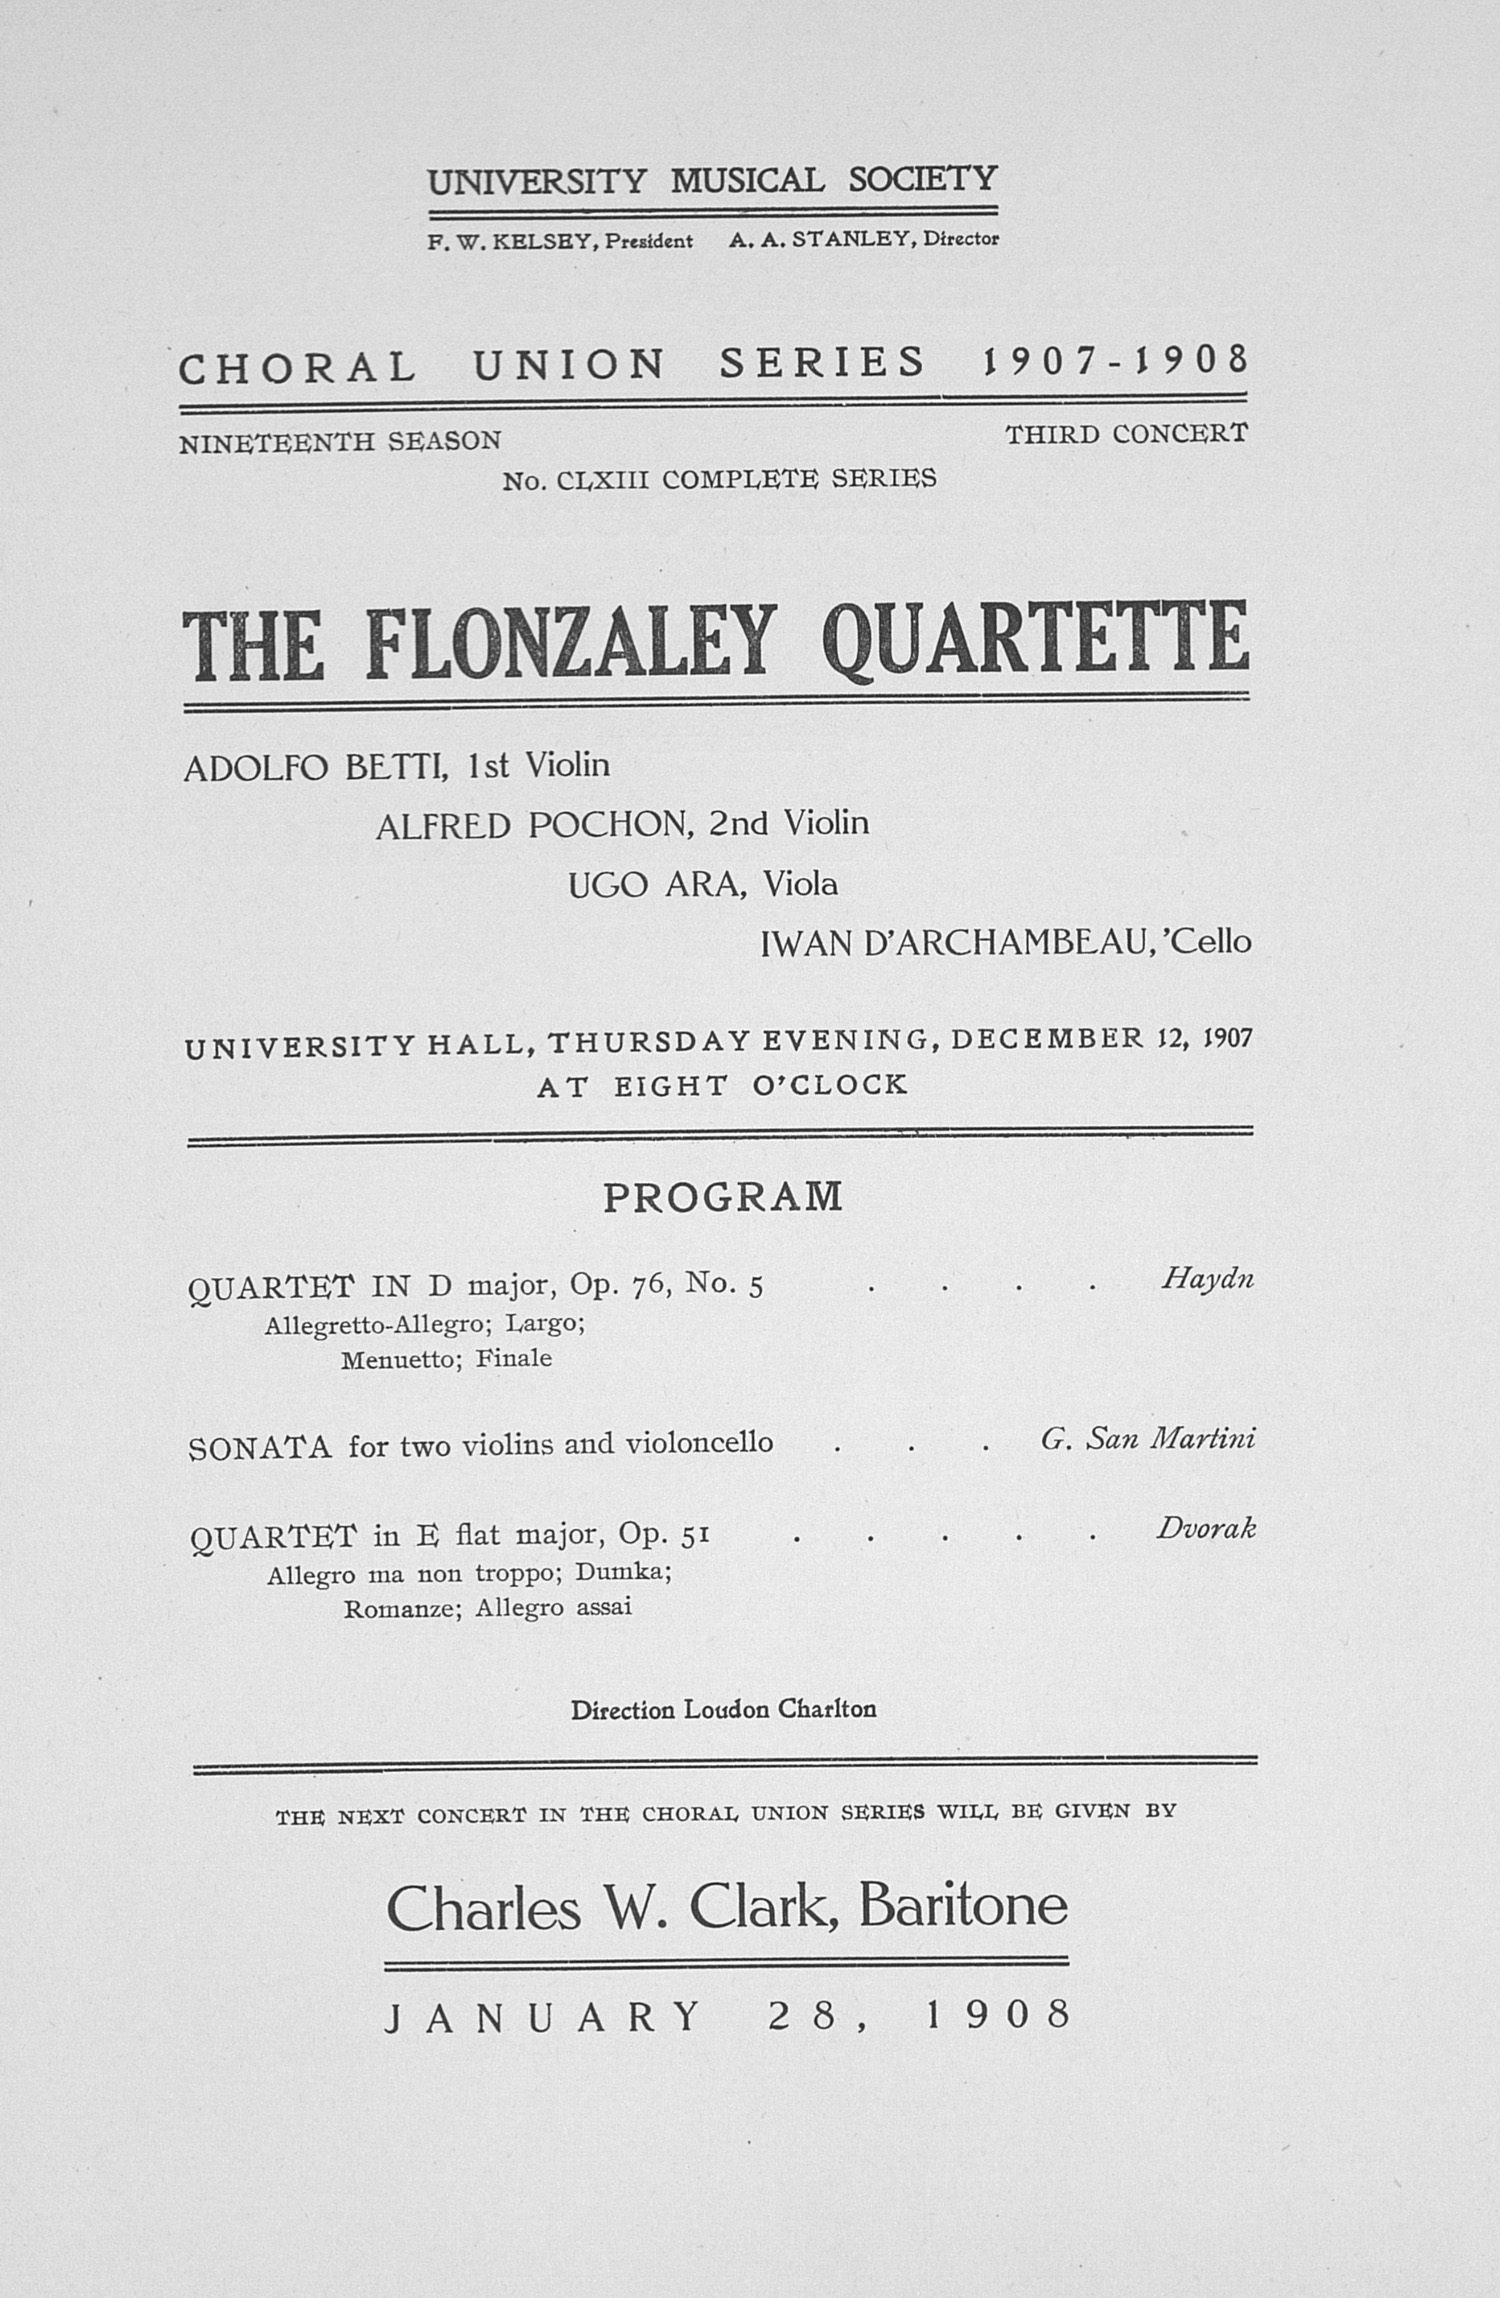 UMS Concert Program, December 12, 1907: Choral Union Series -- The Flonzaley Quartette image